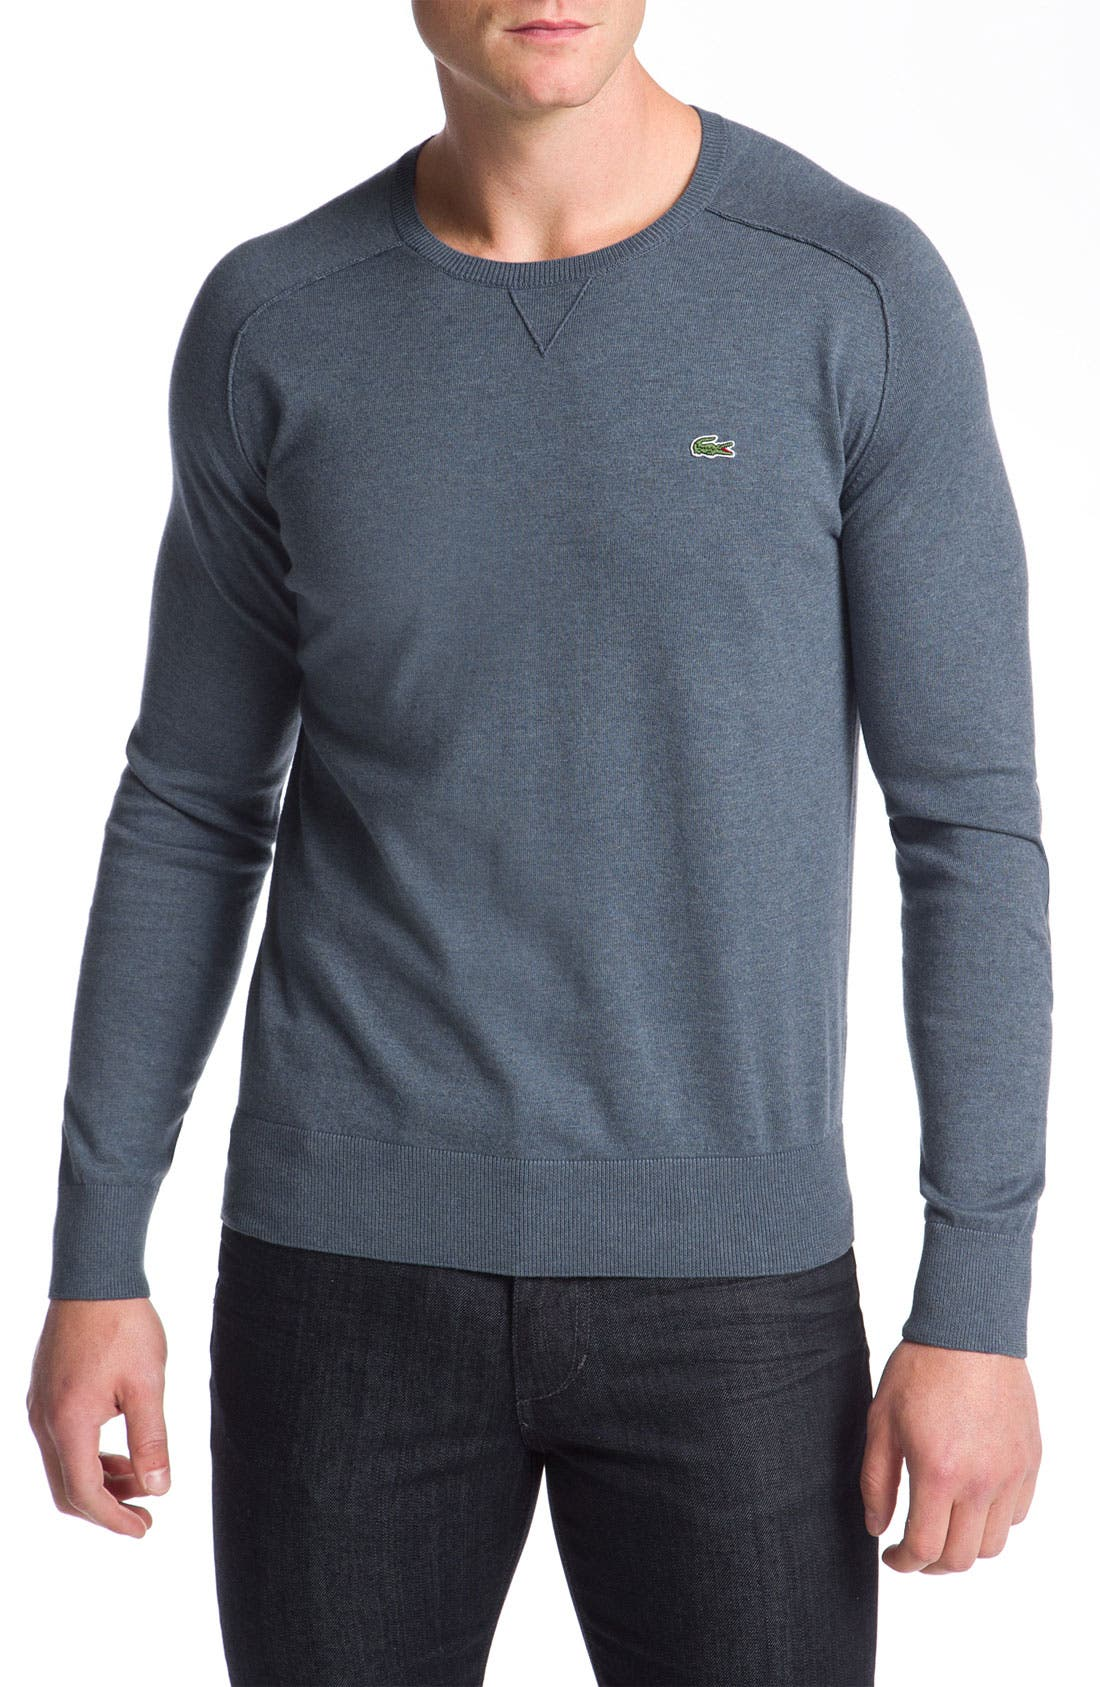 Alternate Image 1 Selected - Lacoste Cotton & Cashmere Crewneck Sweater